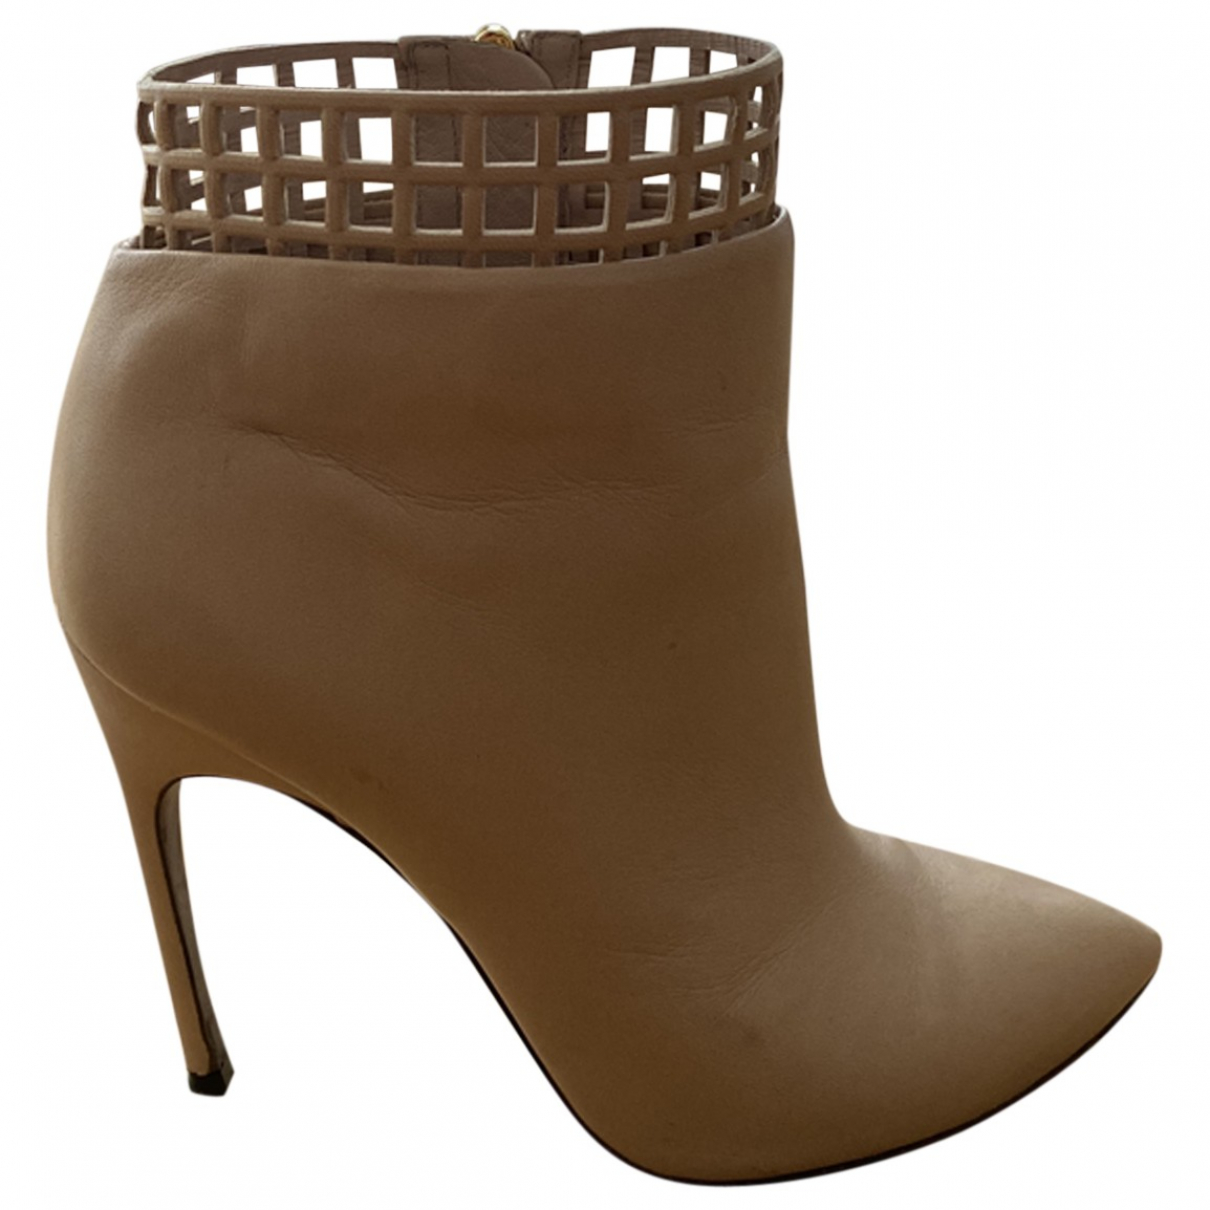 Sergio Rossi \N Beige Leather Ankle boots for Women 39.5 EU